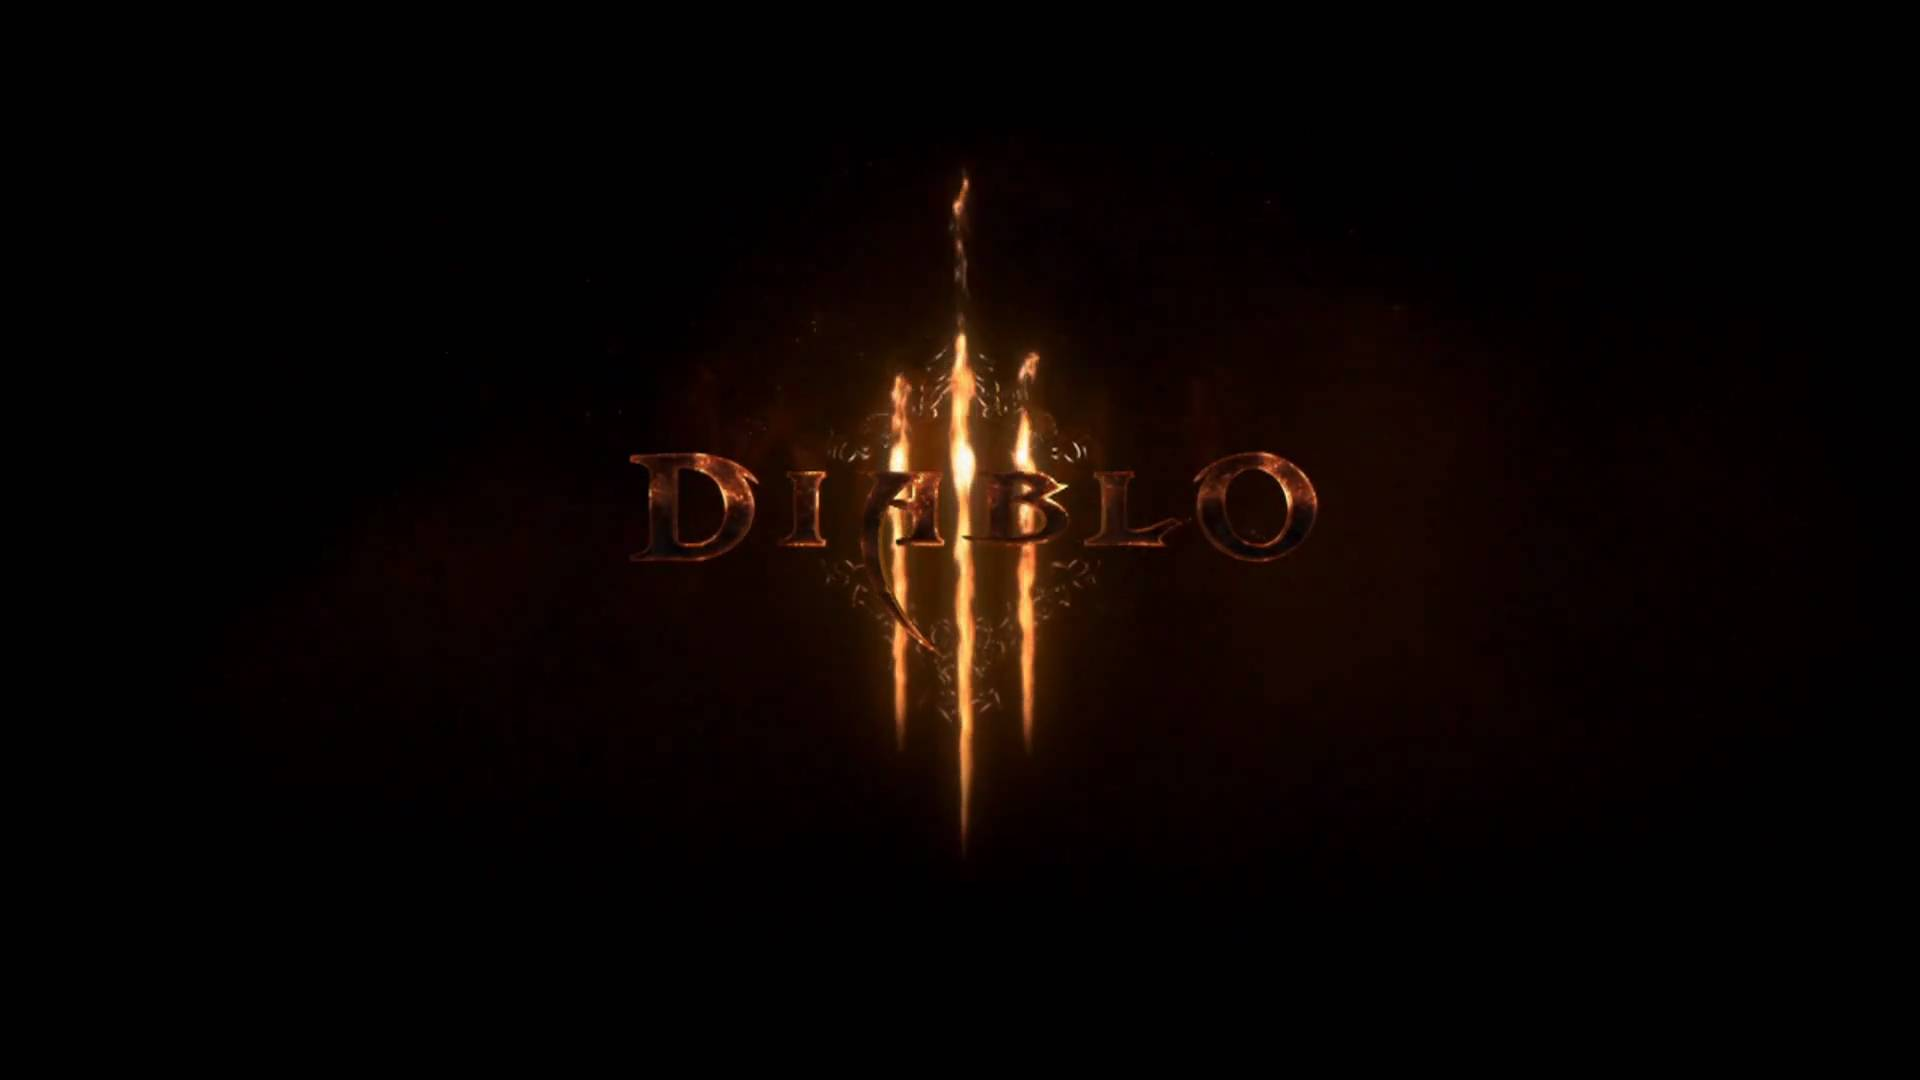 how to get diablo 2 on phone